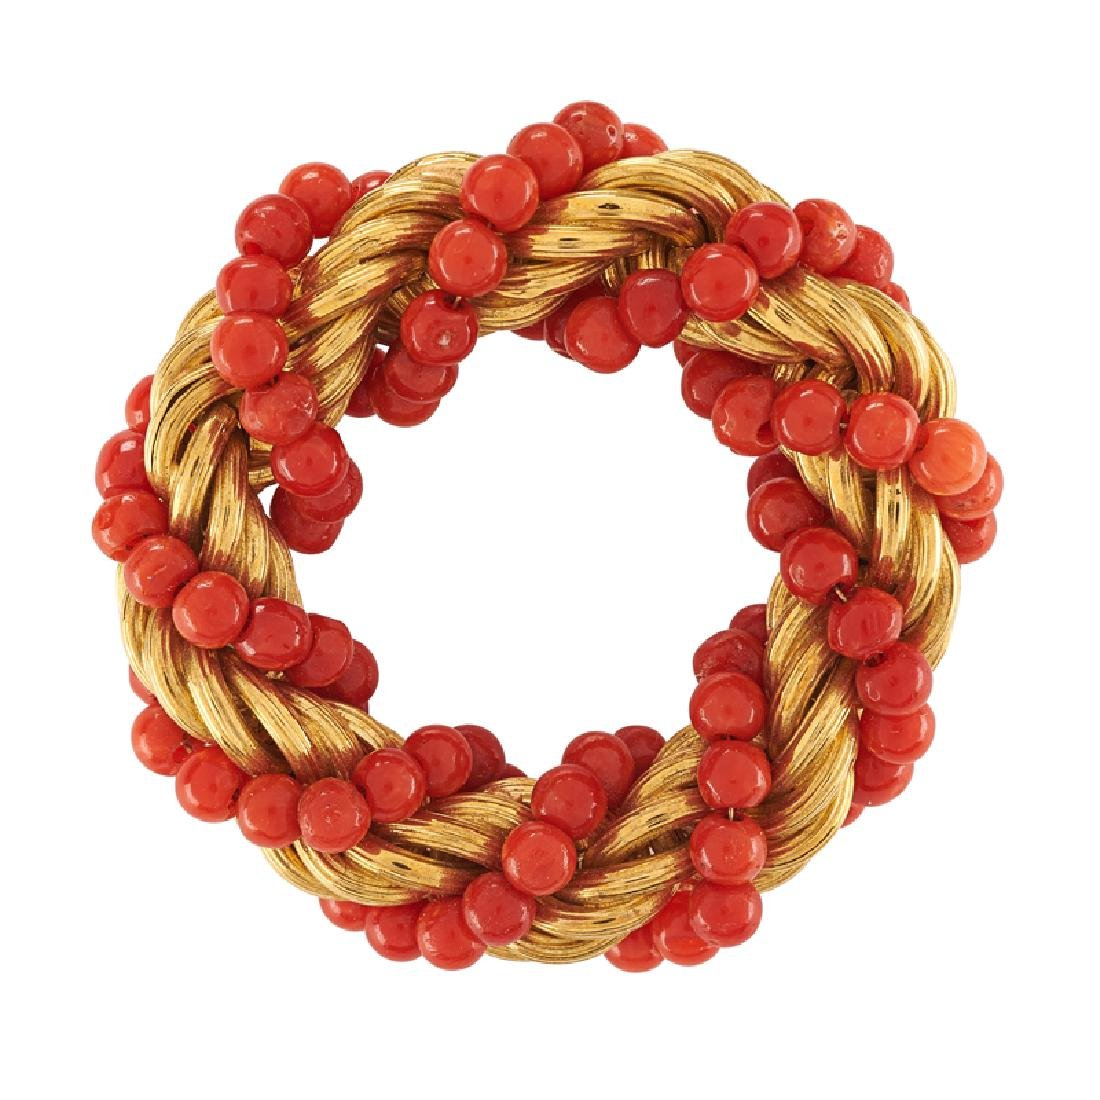 CORAL BEAD & ROPED YELLOW GOLD CIRCLE BROOCH